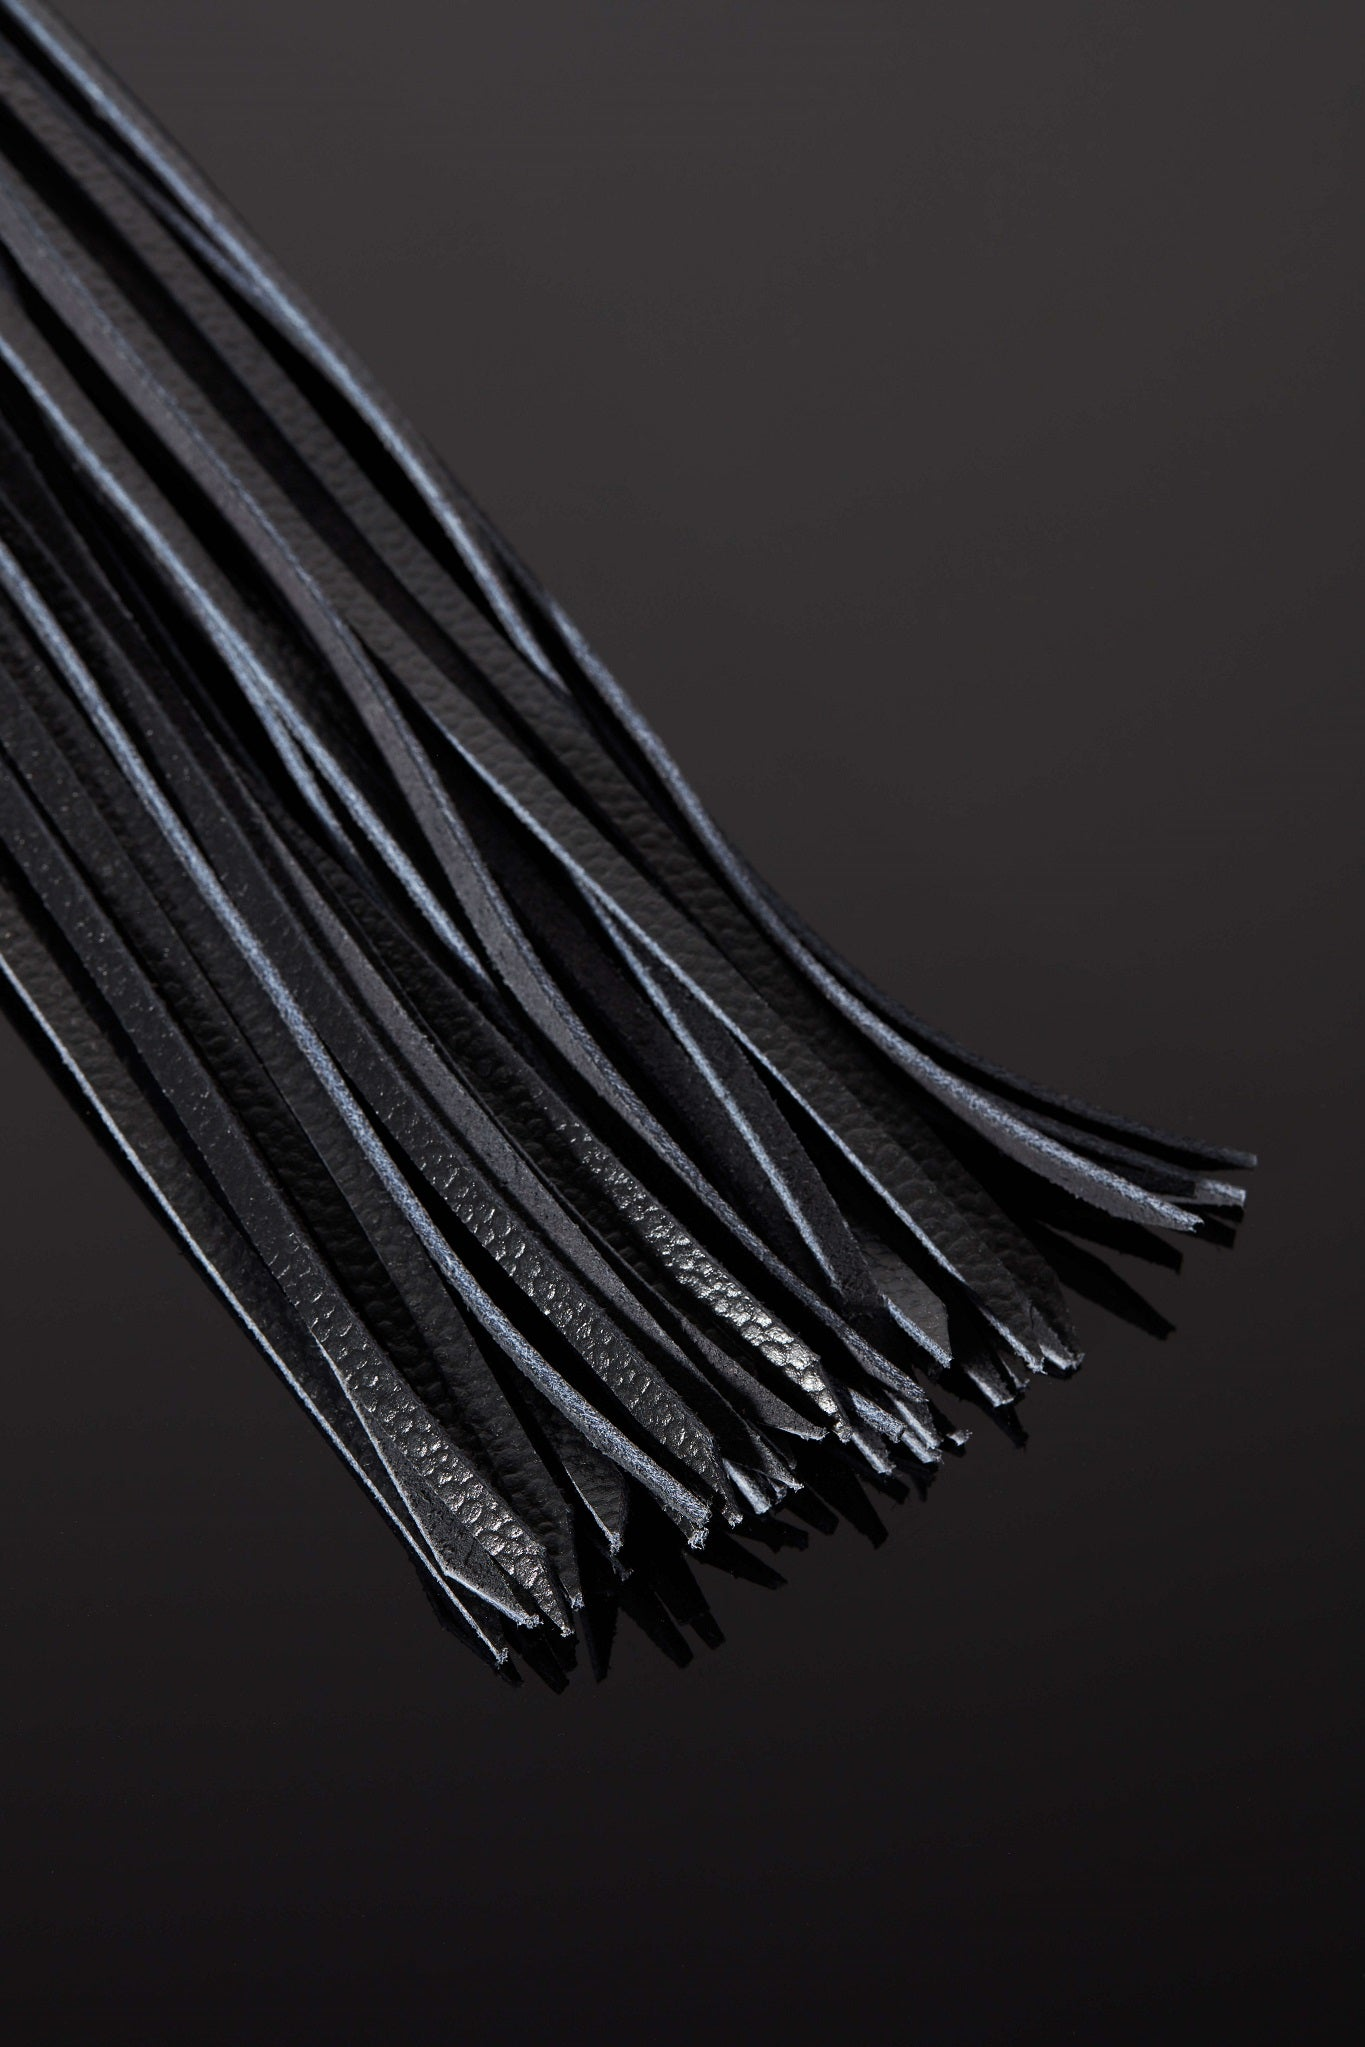 House of SXN Luxury Leather Bondage Vega Glass Flogger Ends